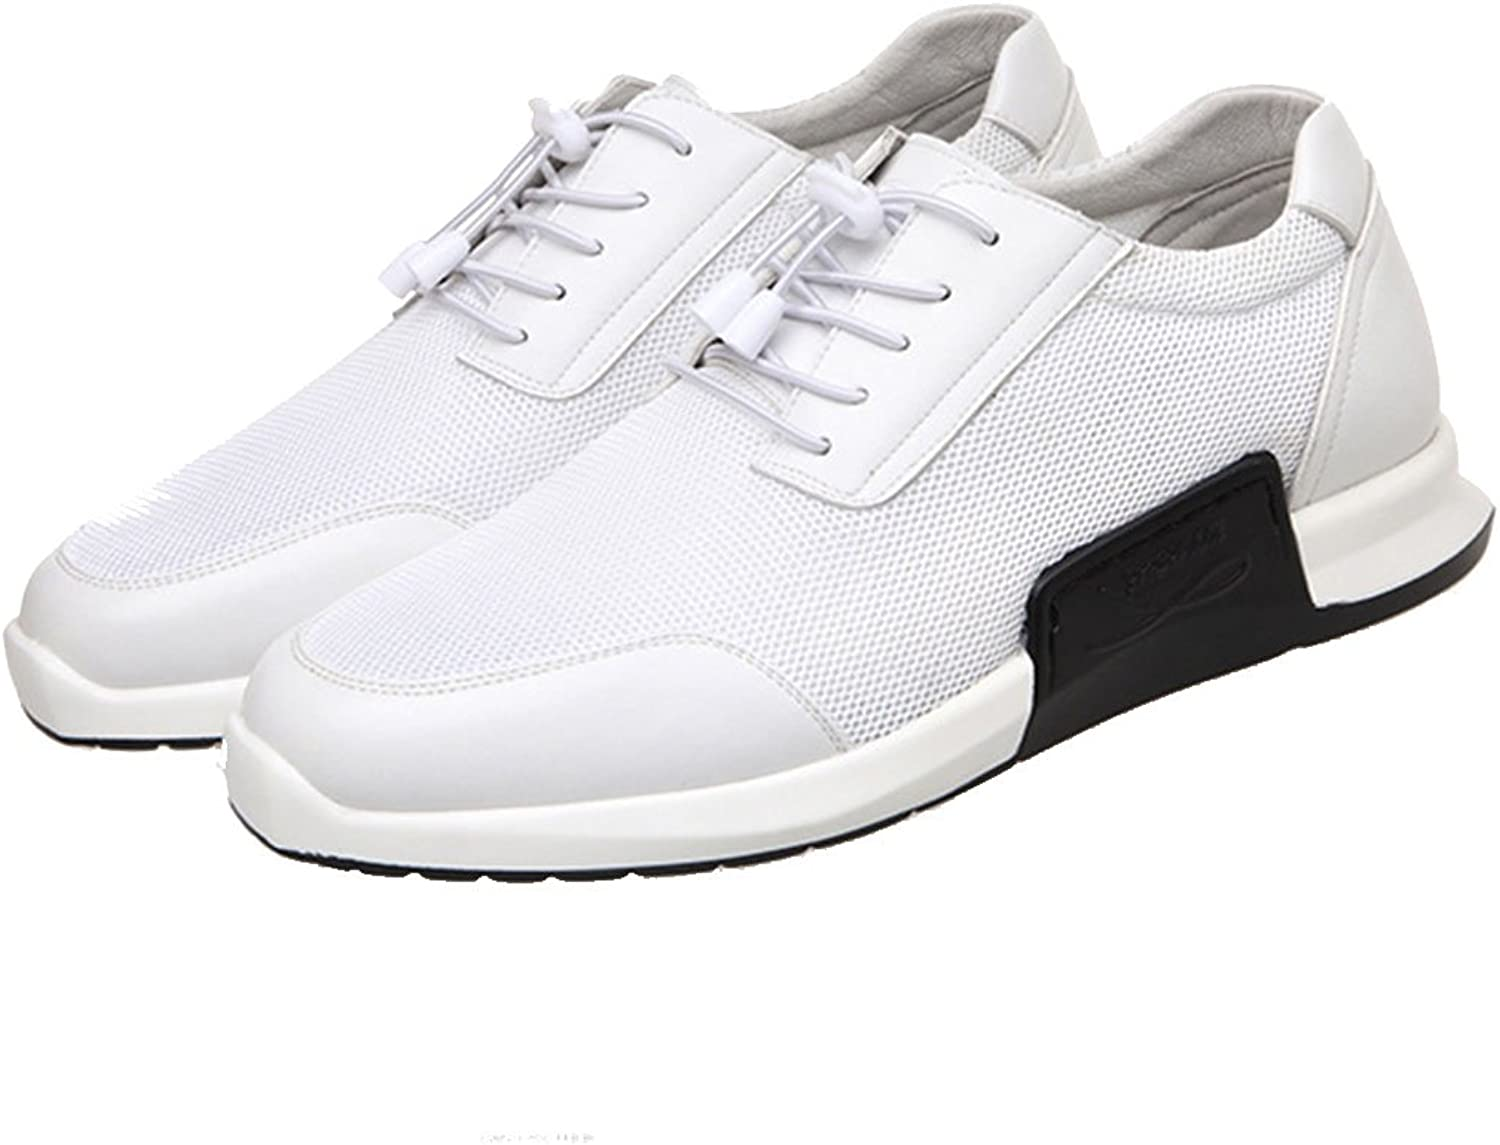 GAOLIXIA Men's Mesh Breathable Sneakers Spring Summer Fashion Sports Casual shoes White Black